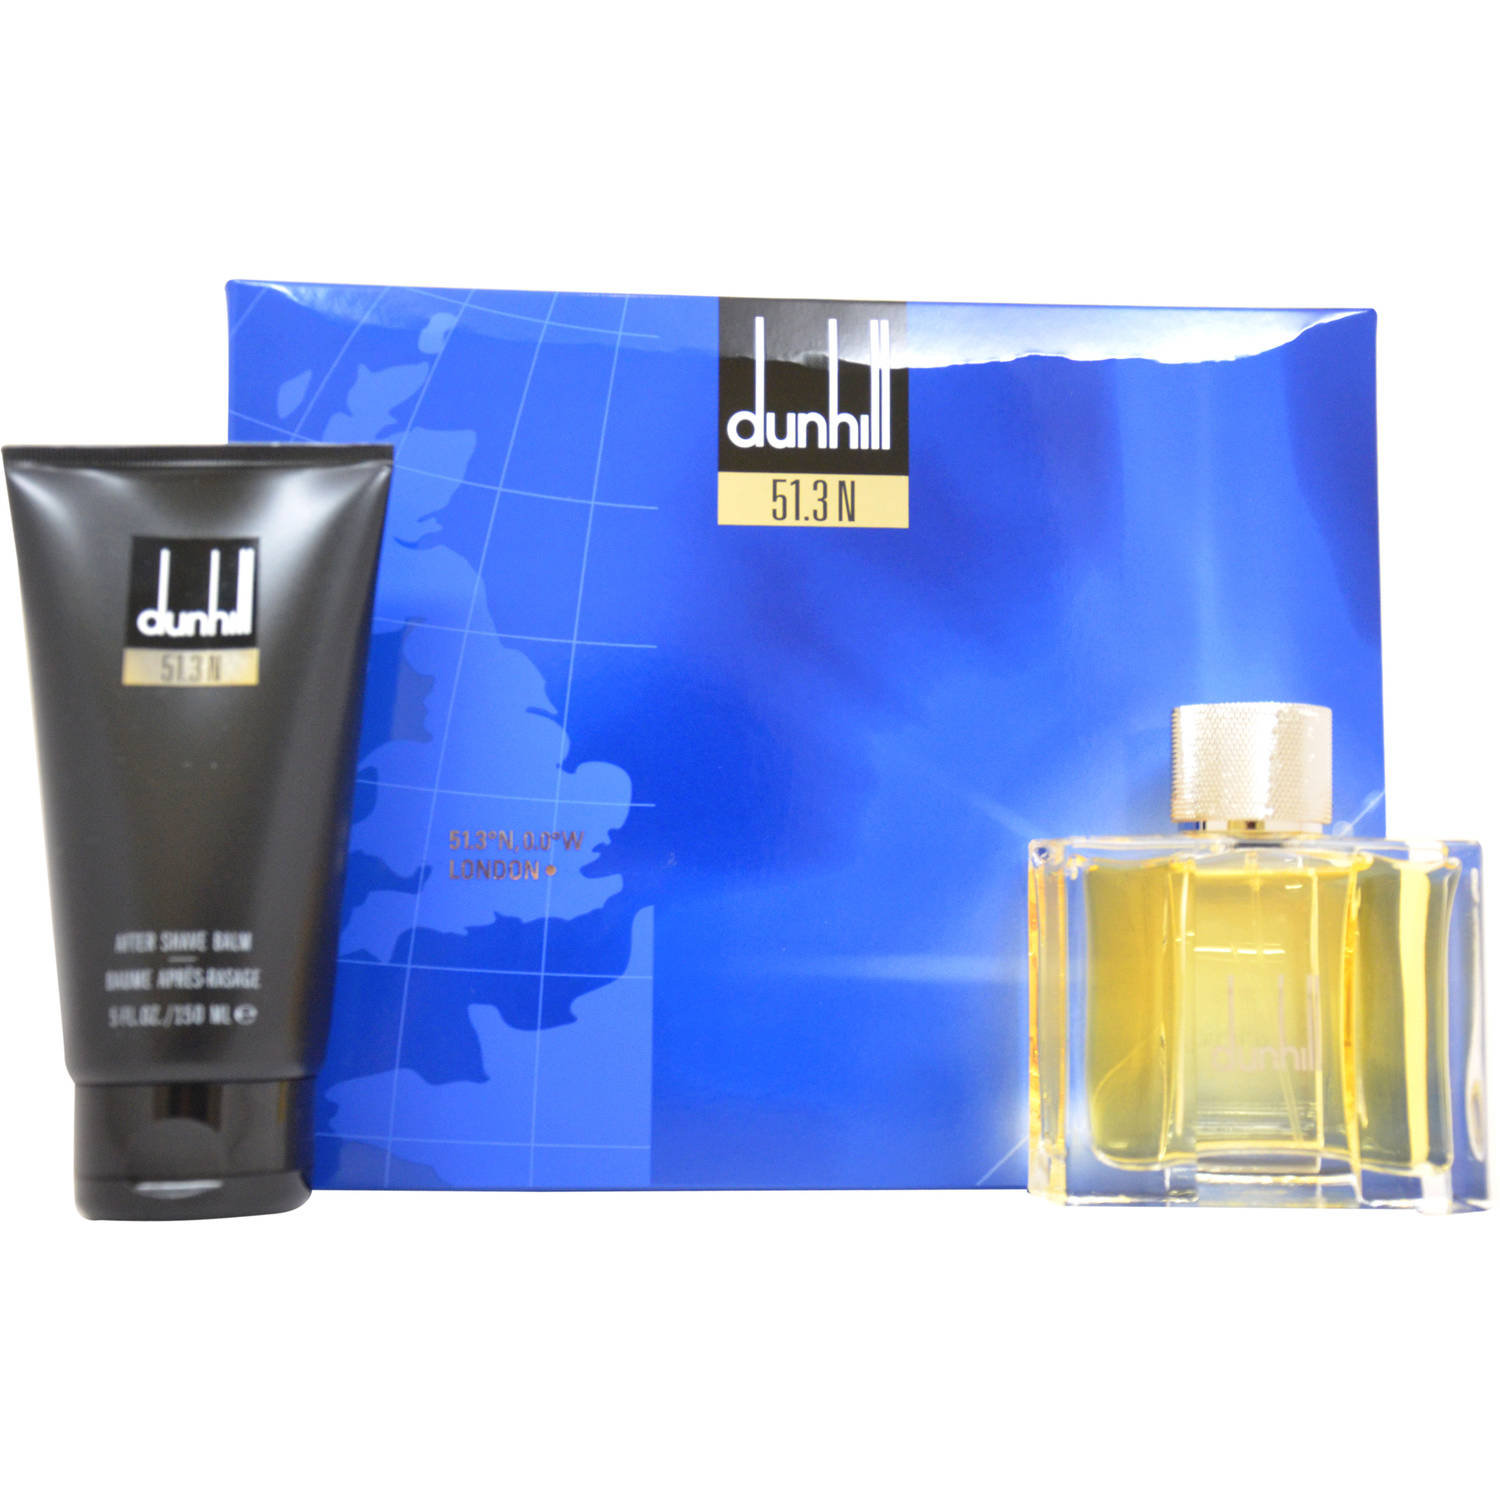 Alfred Dunhill Dunhill 51.3N Gift Set for Men, 2 pc